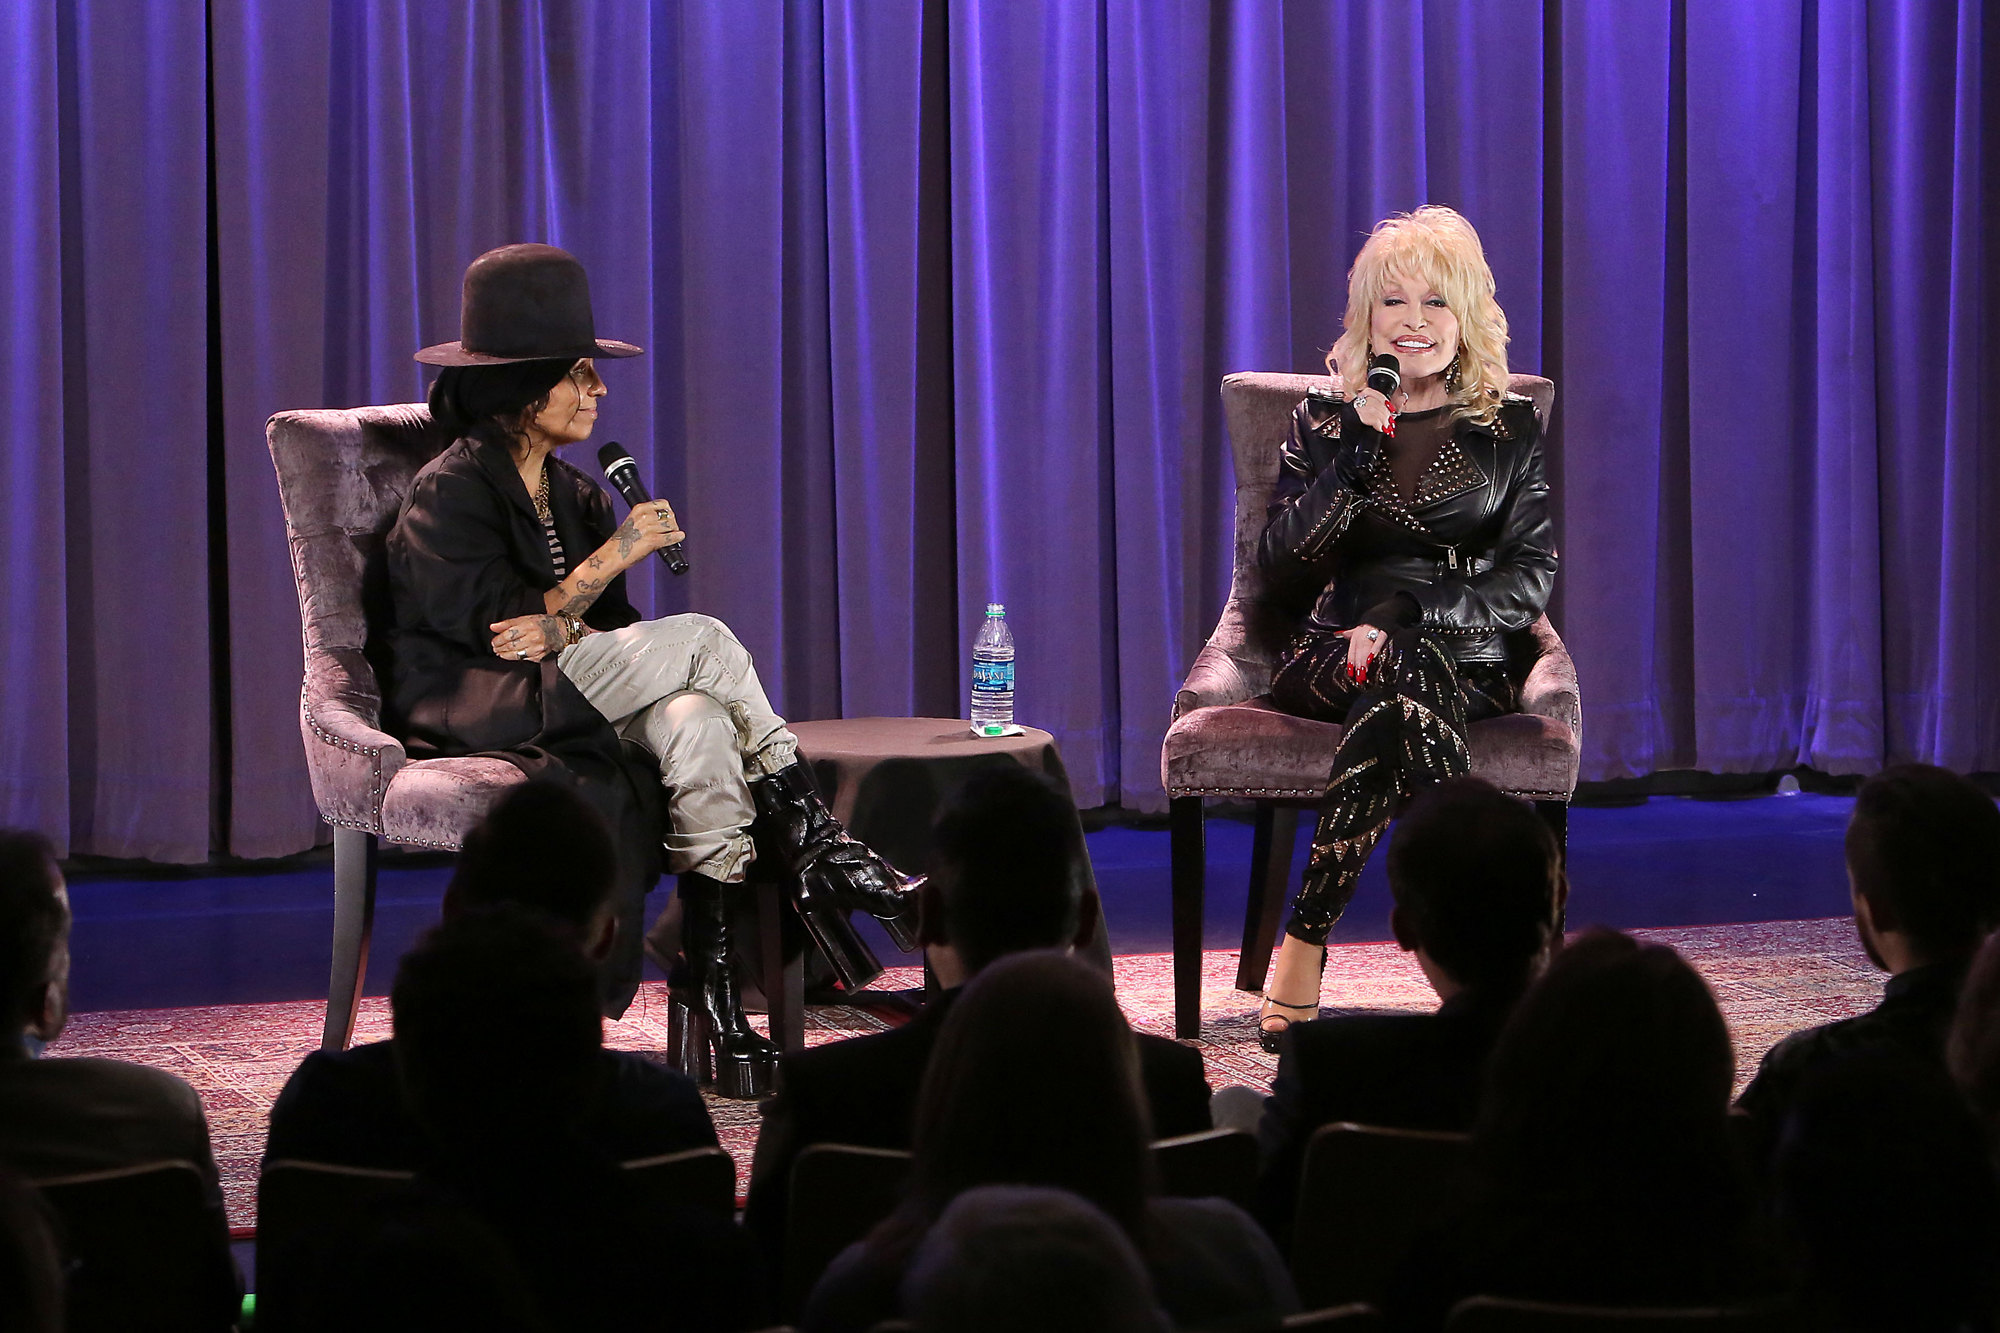 GRAMMY Museum Town Hall Program With Dolly Parton Moderated By Linda Perry